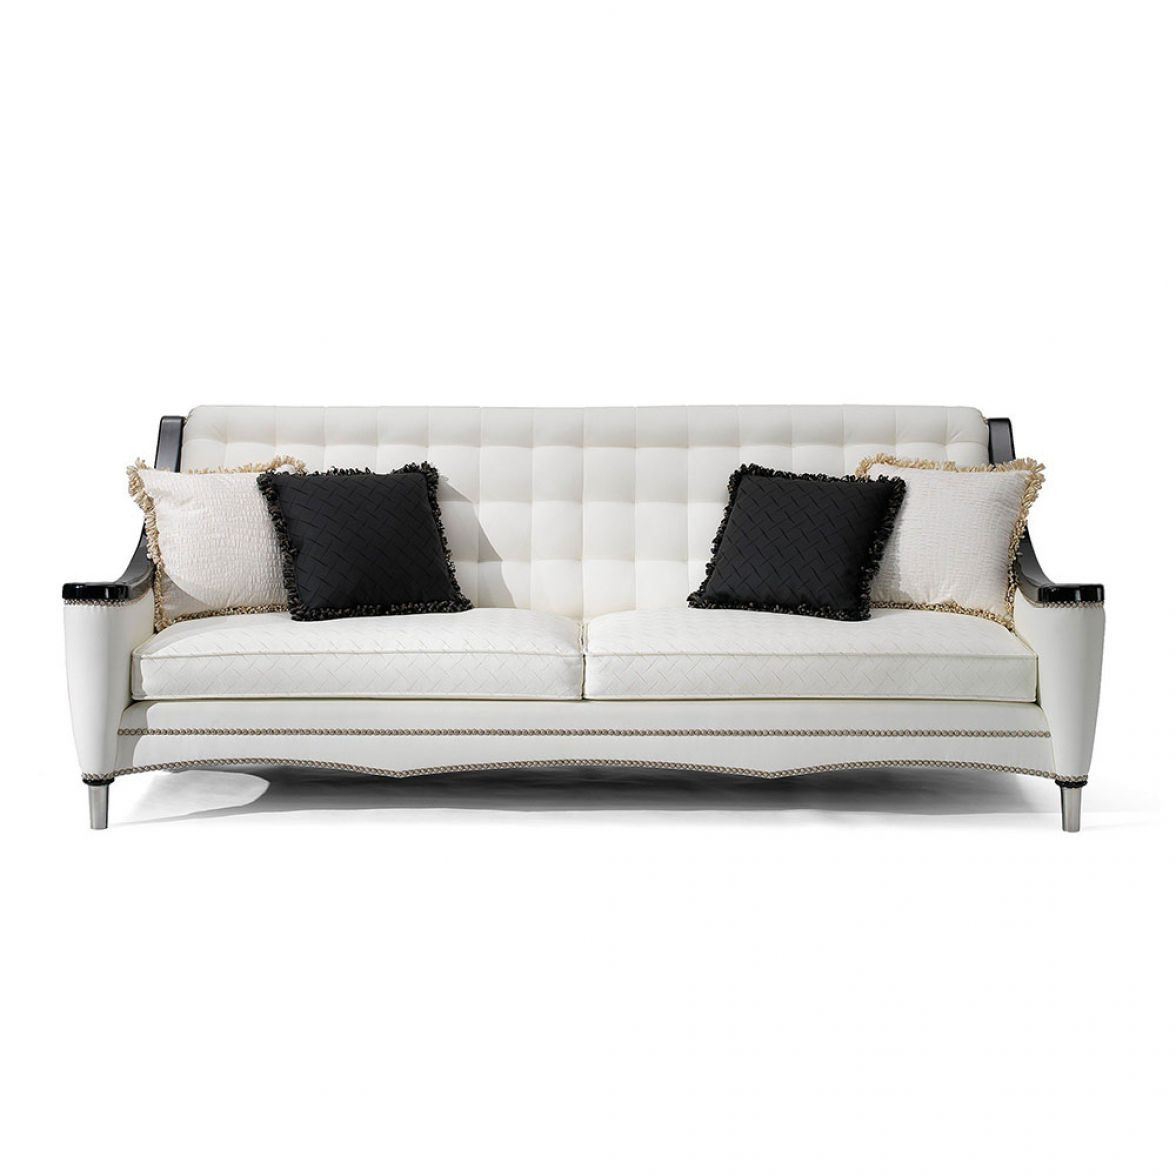 Berkeley sofa фото цена